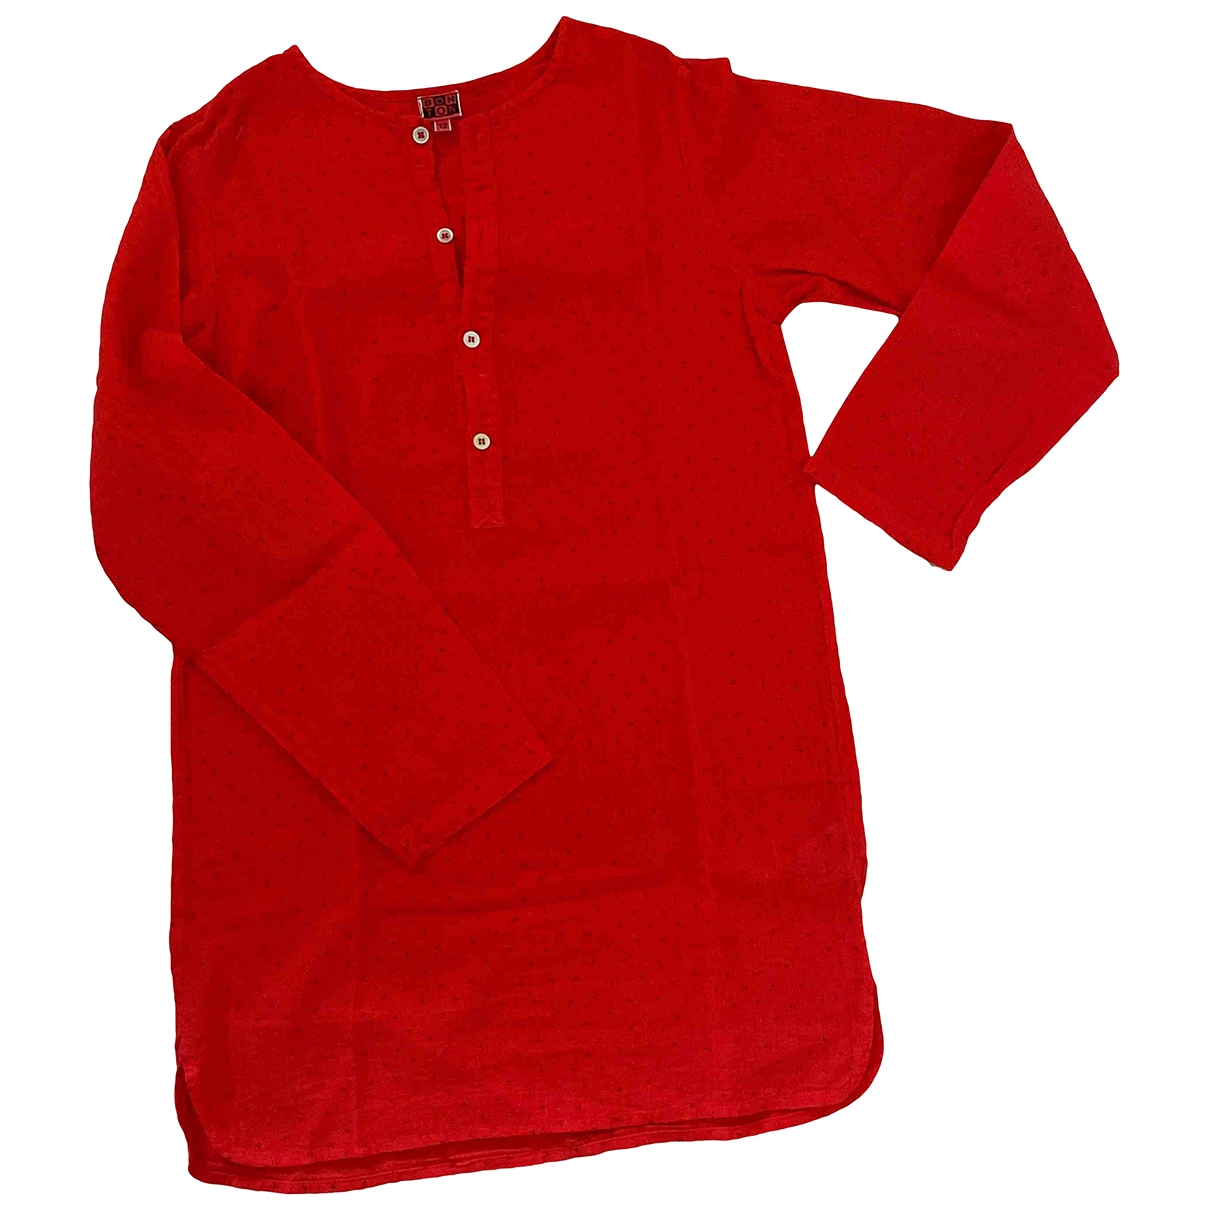 Bonton \N Red Cotton  top for Kids 12 years - XS FR